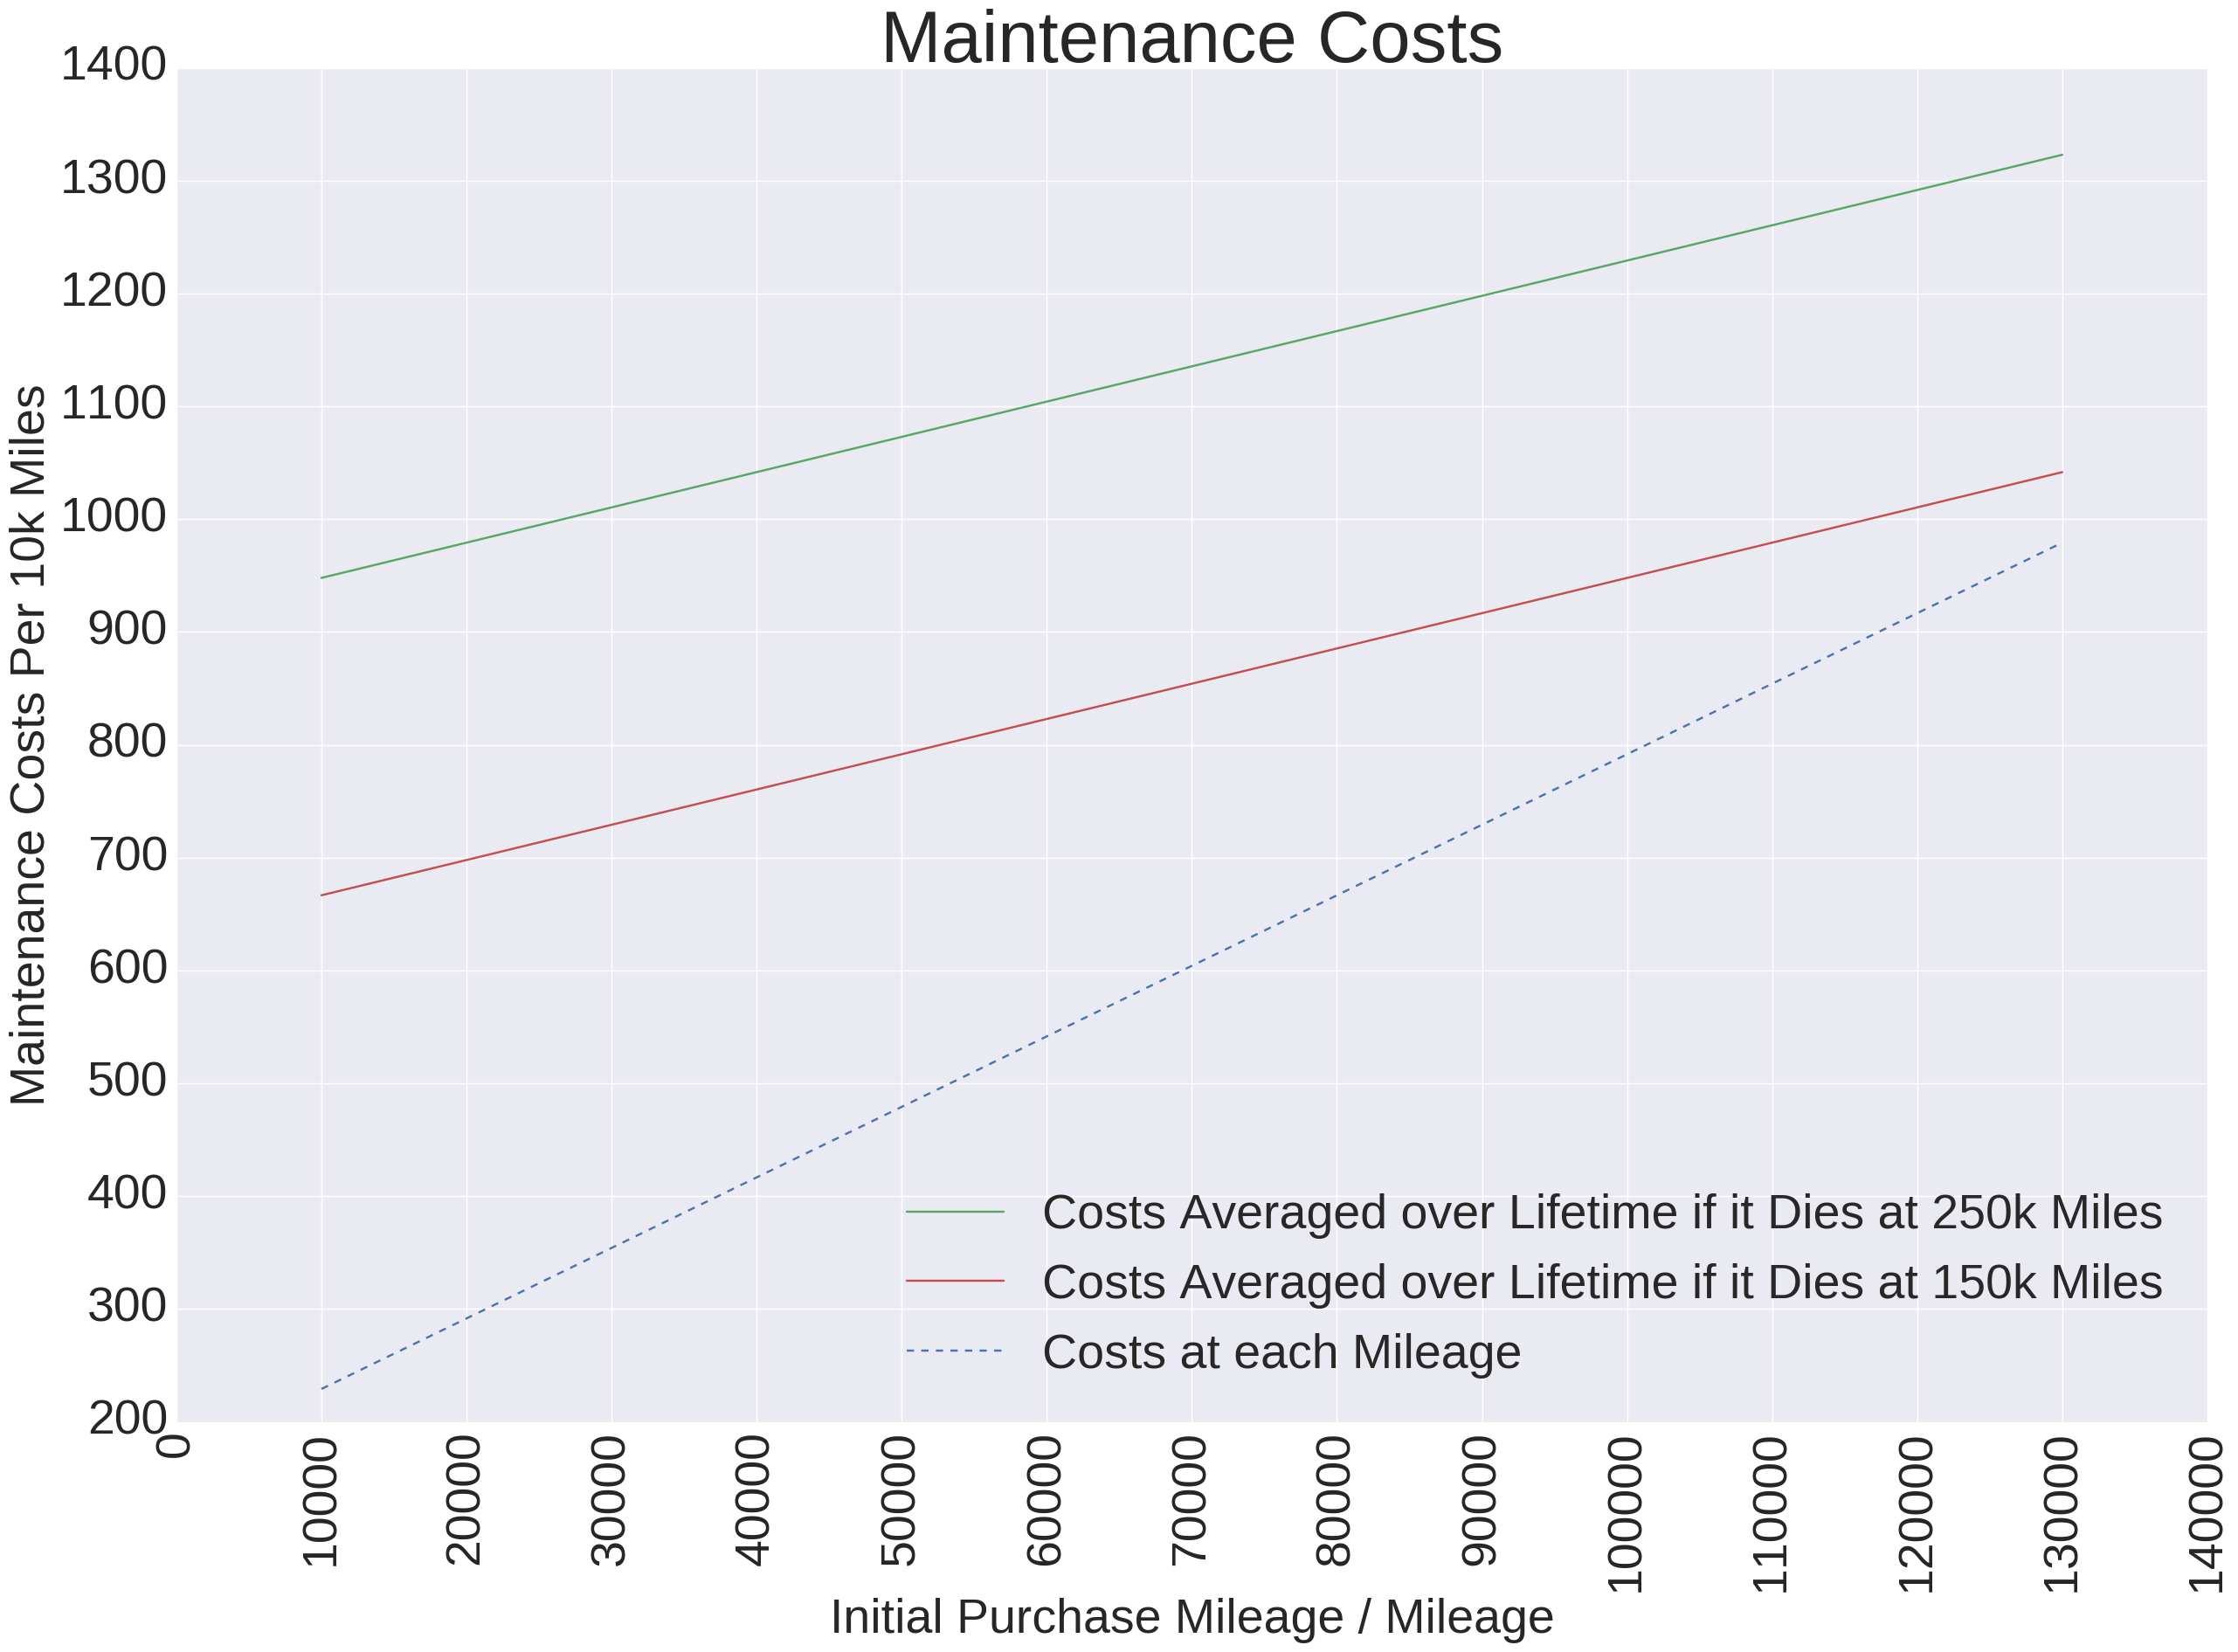 it may have been easy to guess given that maintenance is cheaper at lower mileages but the averaged maintenance costs have the same trend as purchase price